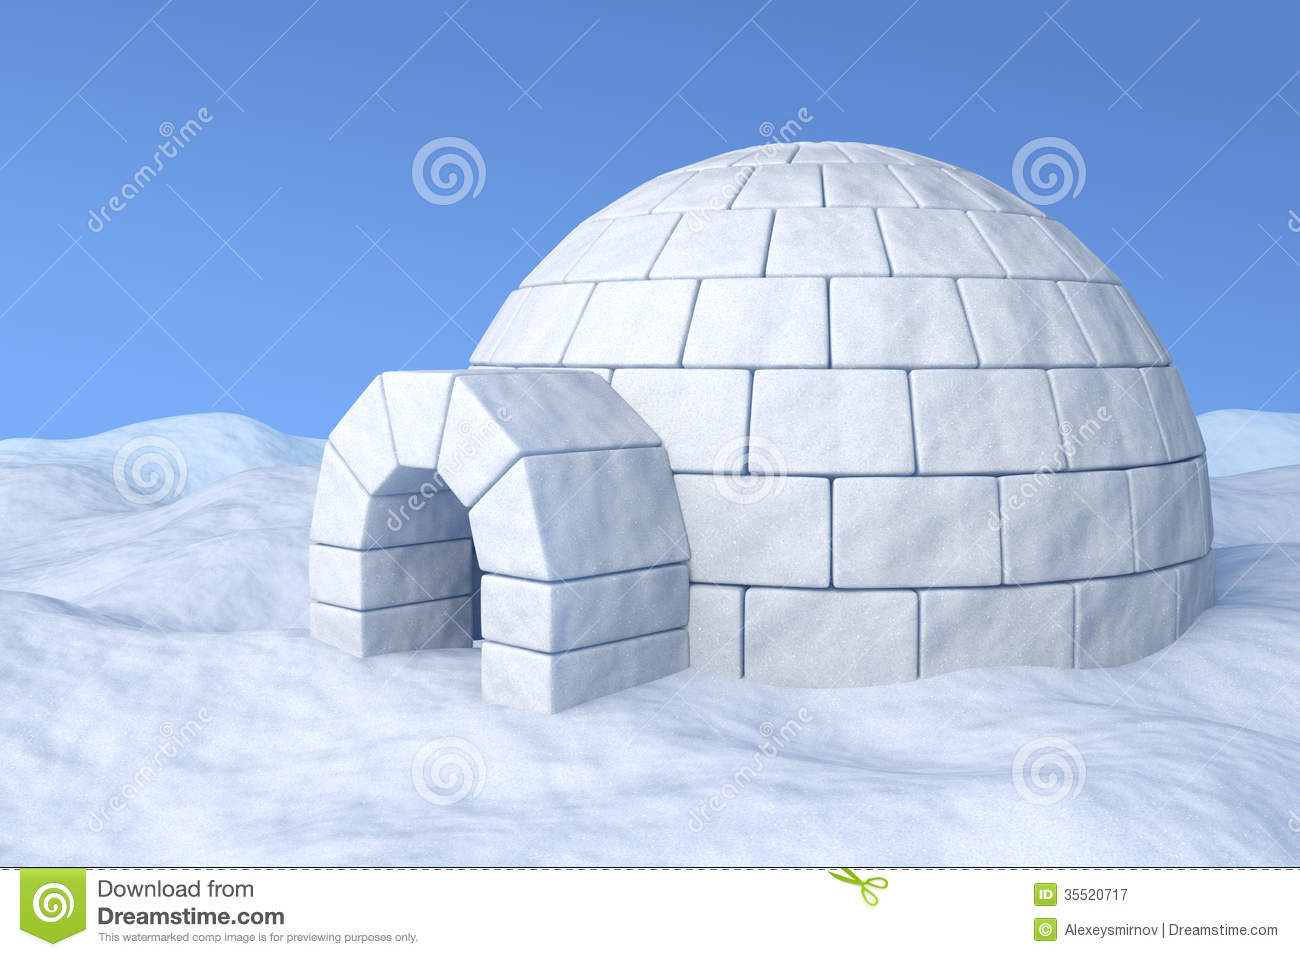 igloo on snow stock illustration illustration of block igloo clipart igloo clip art white in middle